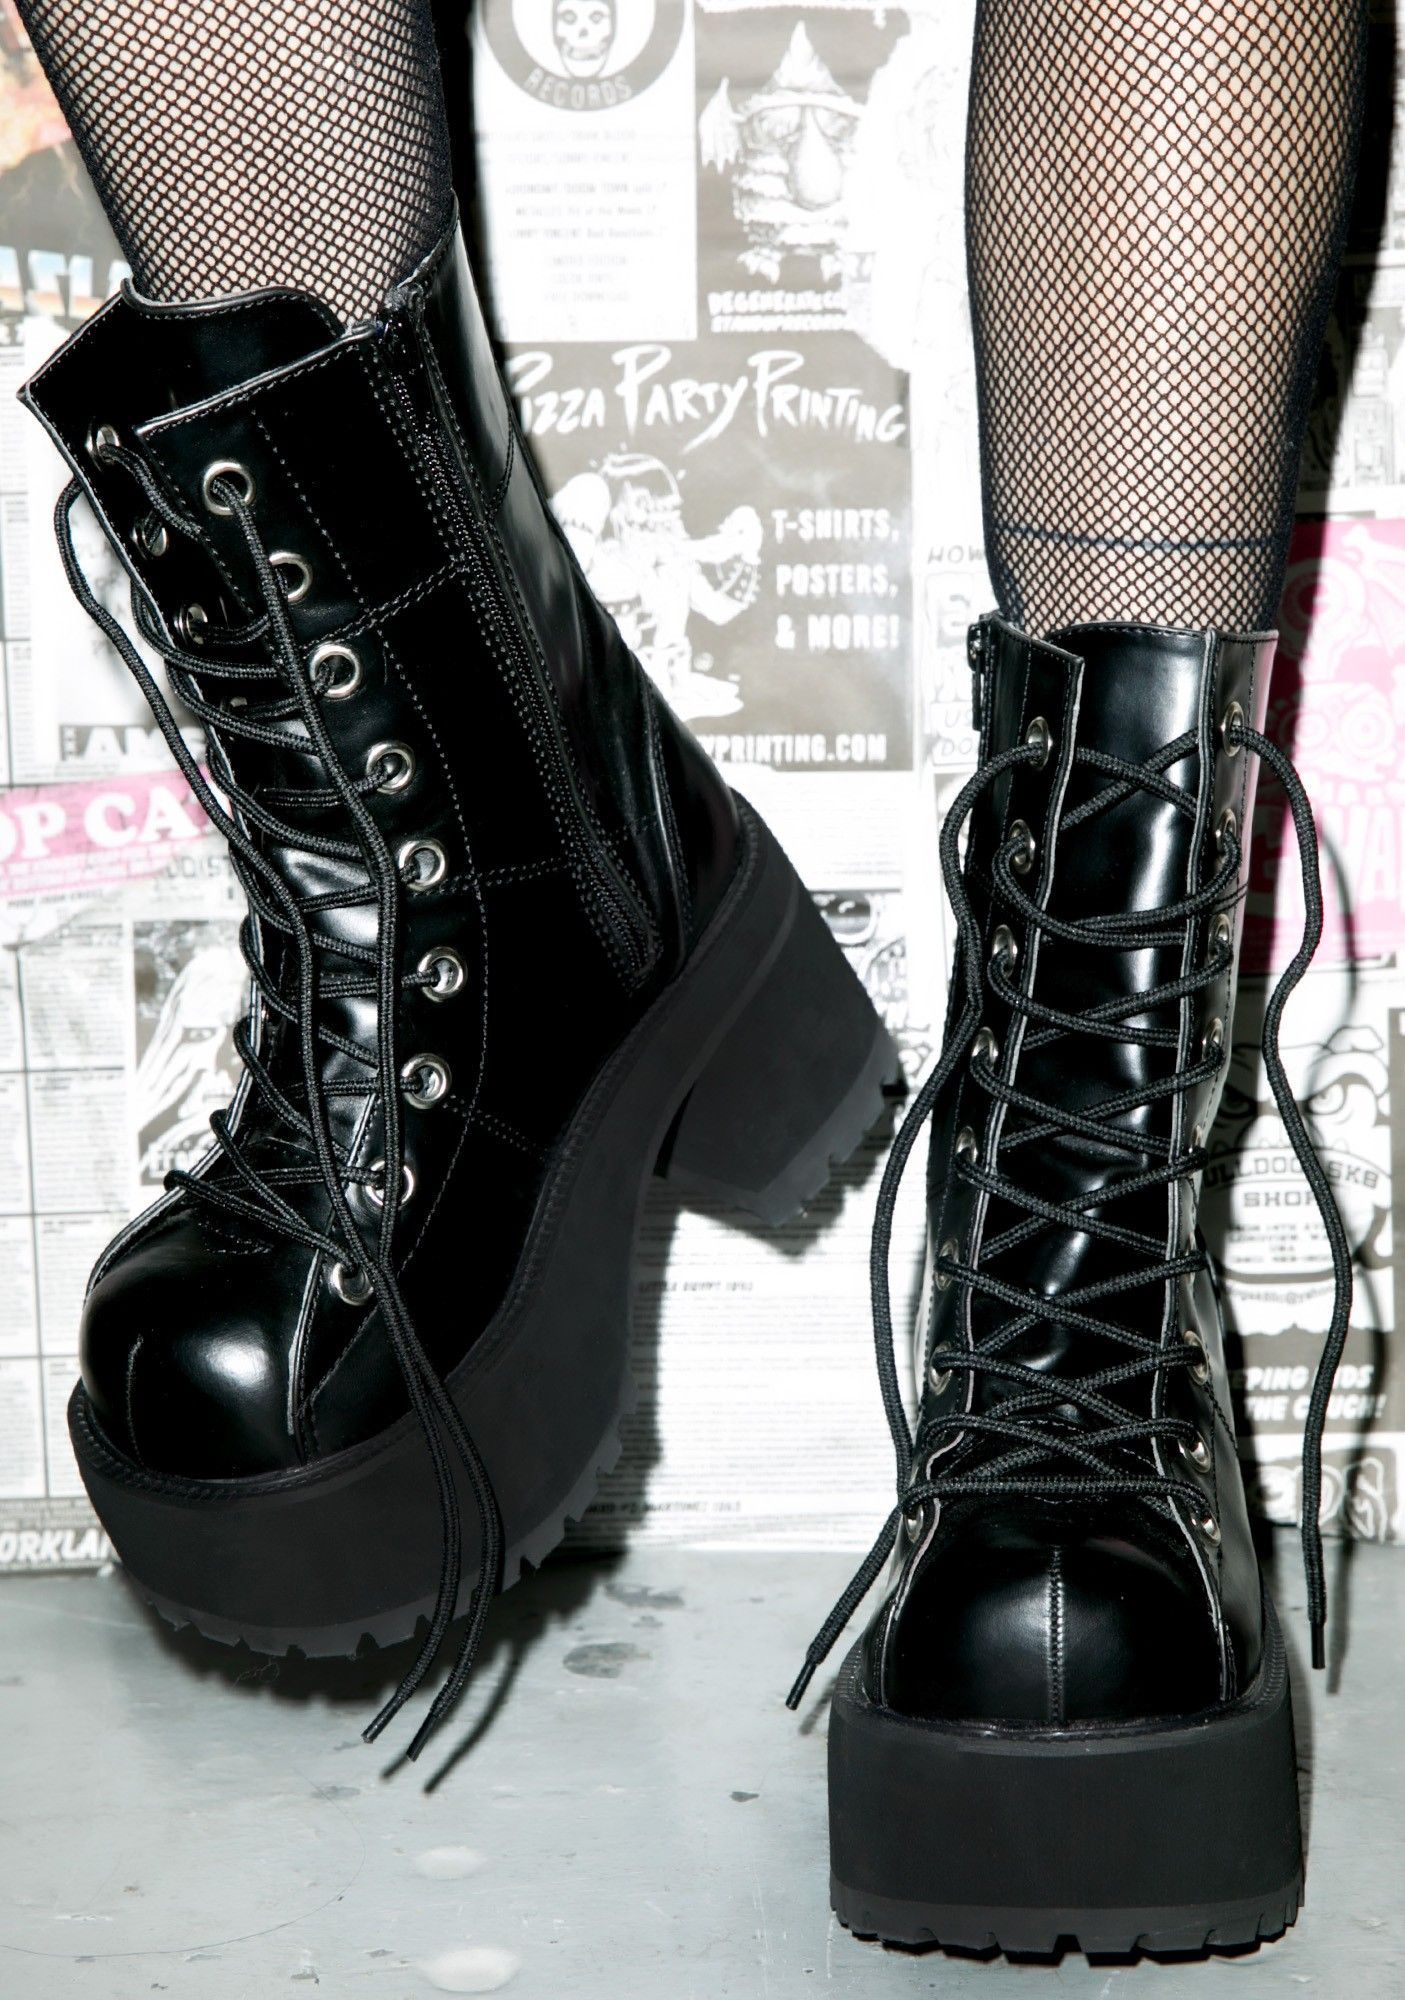 bde2257f59 Under Pressure Platform Boots | I NEED IT | Goth boots, Goth shoes ...